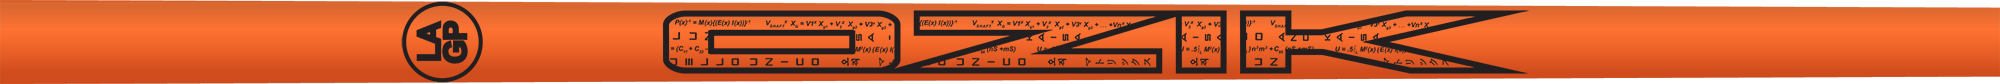 Ozik White Tie: Neon Orange Black Satin - Wood 40 A